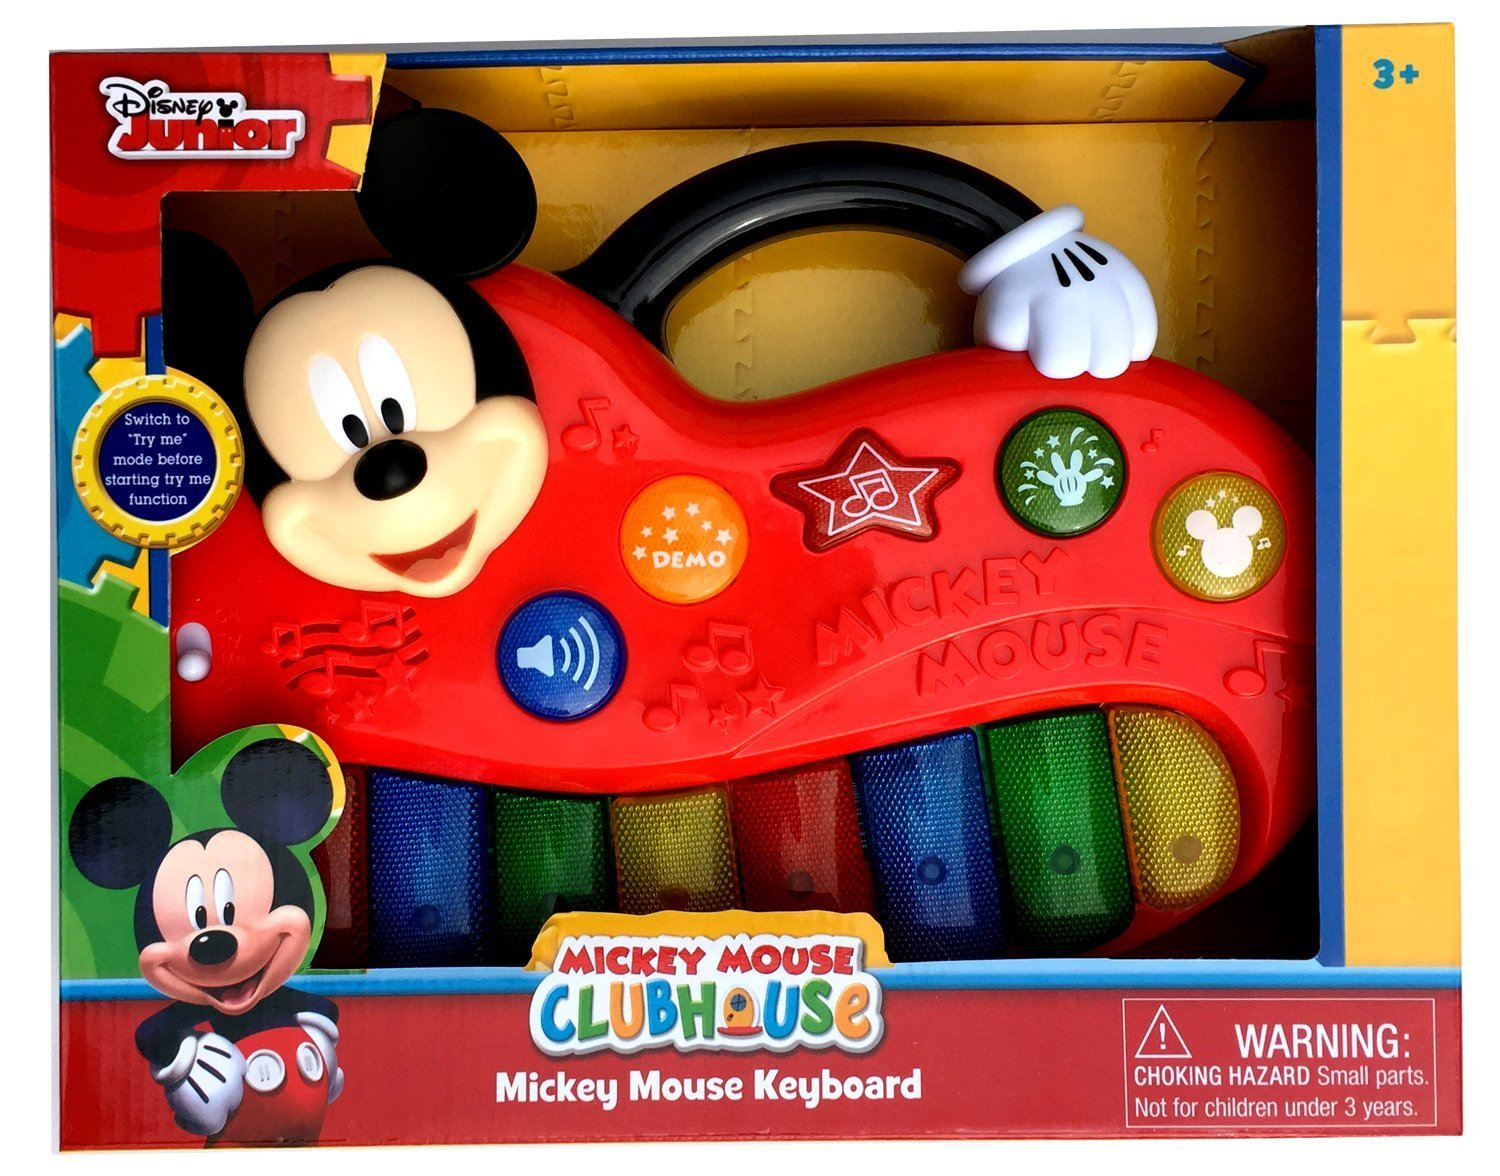 I Actually Just Ordered This For My Son And He Loves It The Keys Light Up Mickey Talks To Them Too Instrument Gifts Are Great At Age They